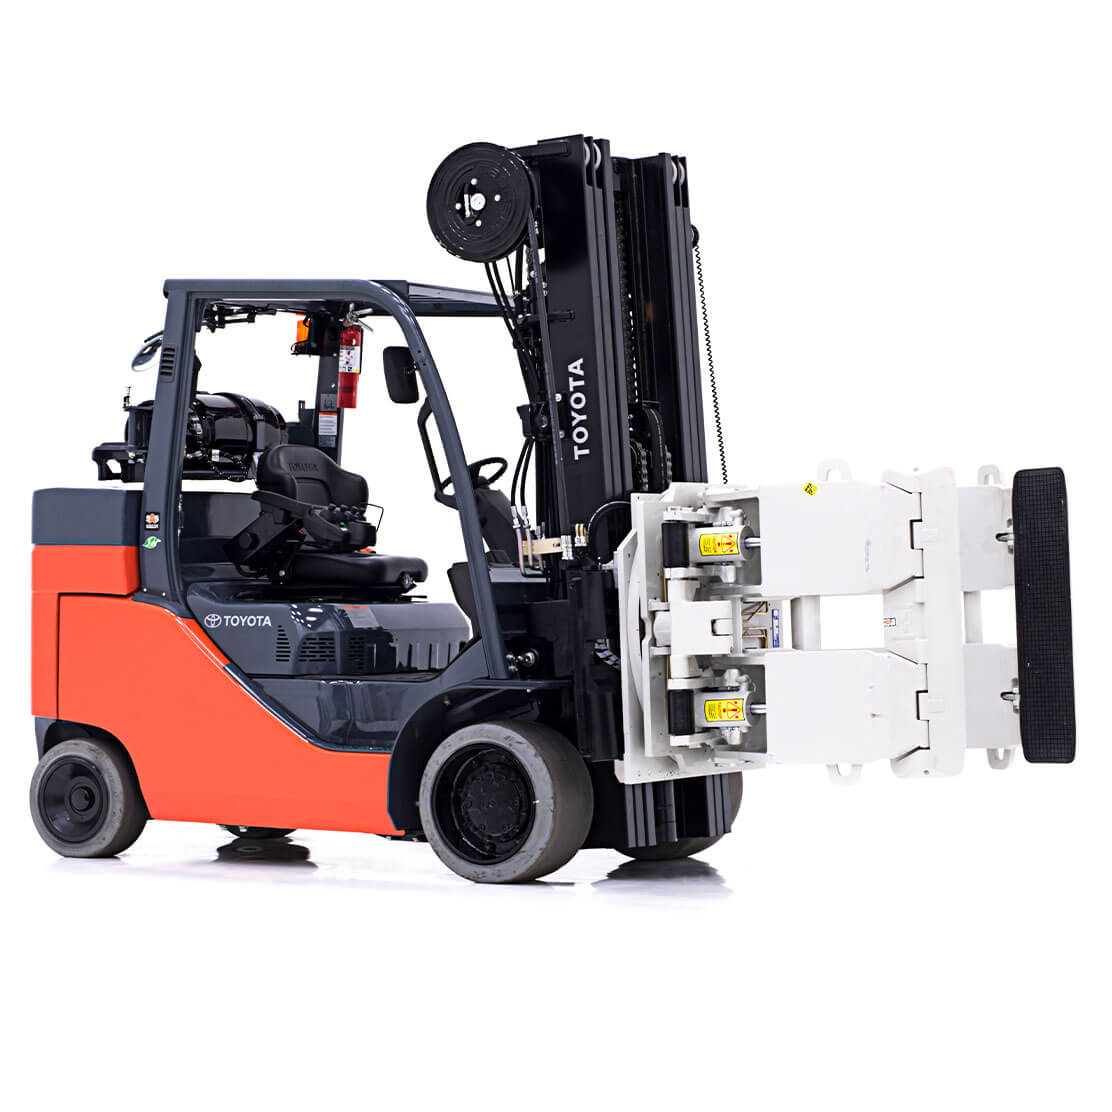 Paper Roll special forklift side view 2